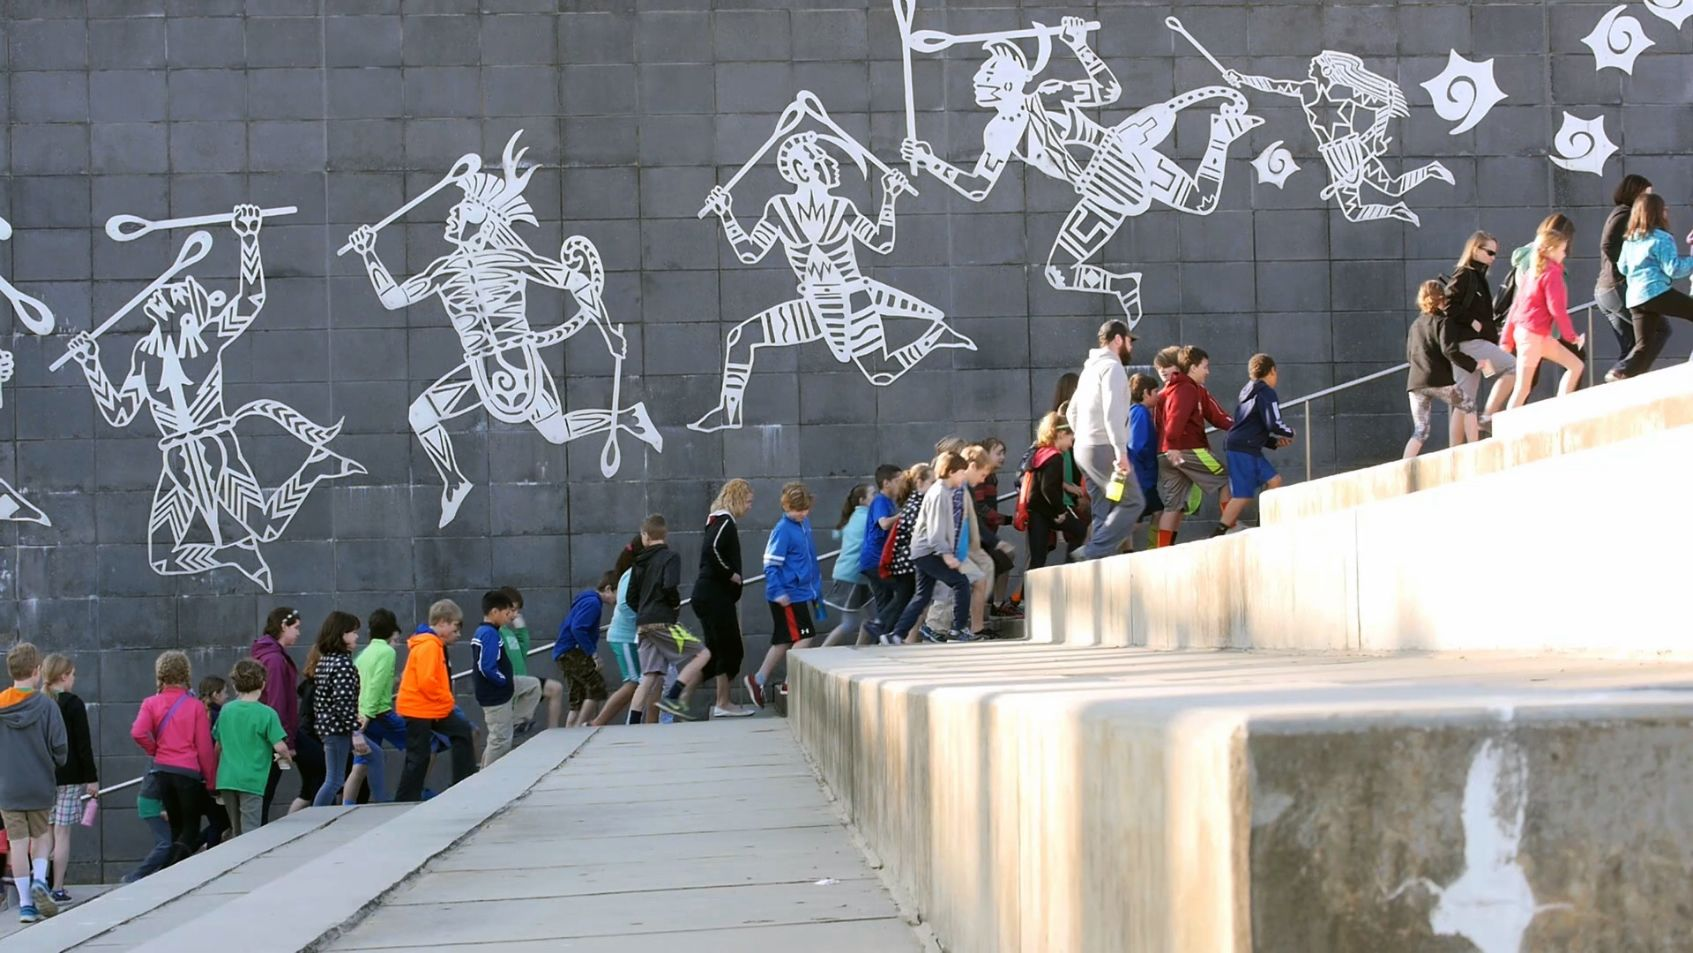 Students and teachers are walking by an art wall.